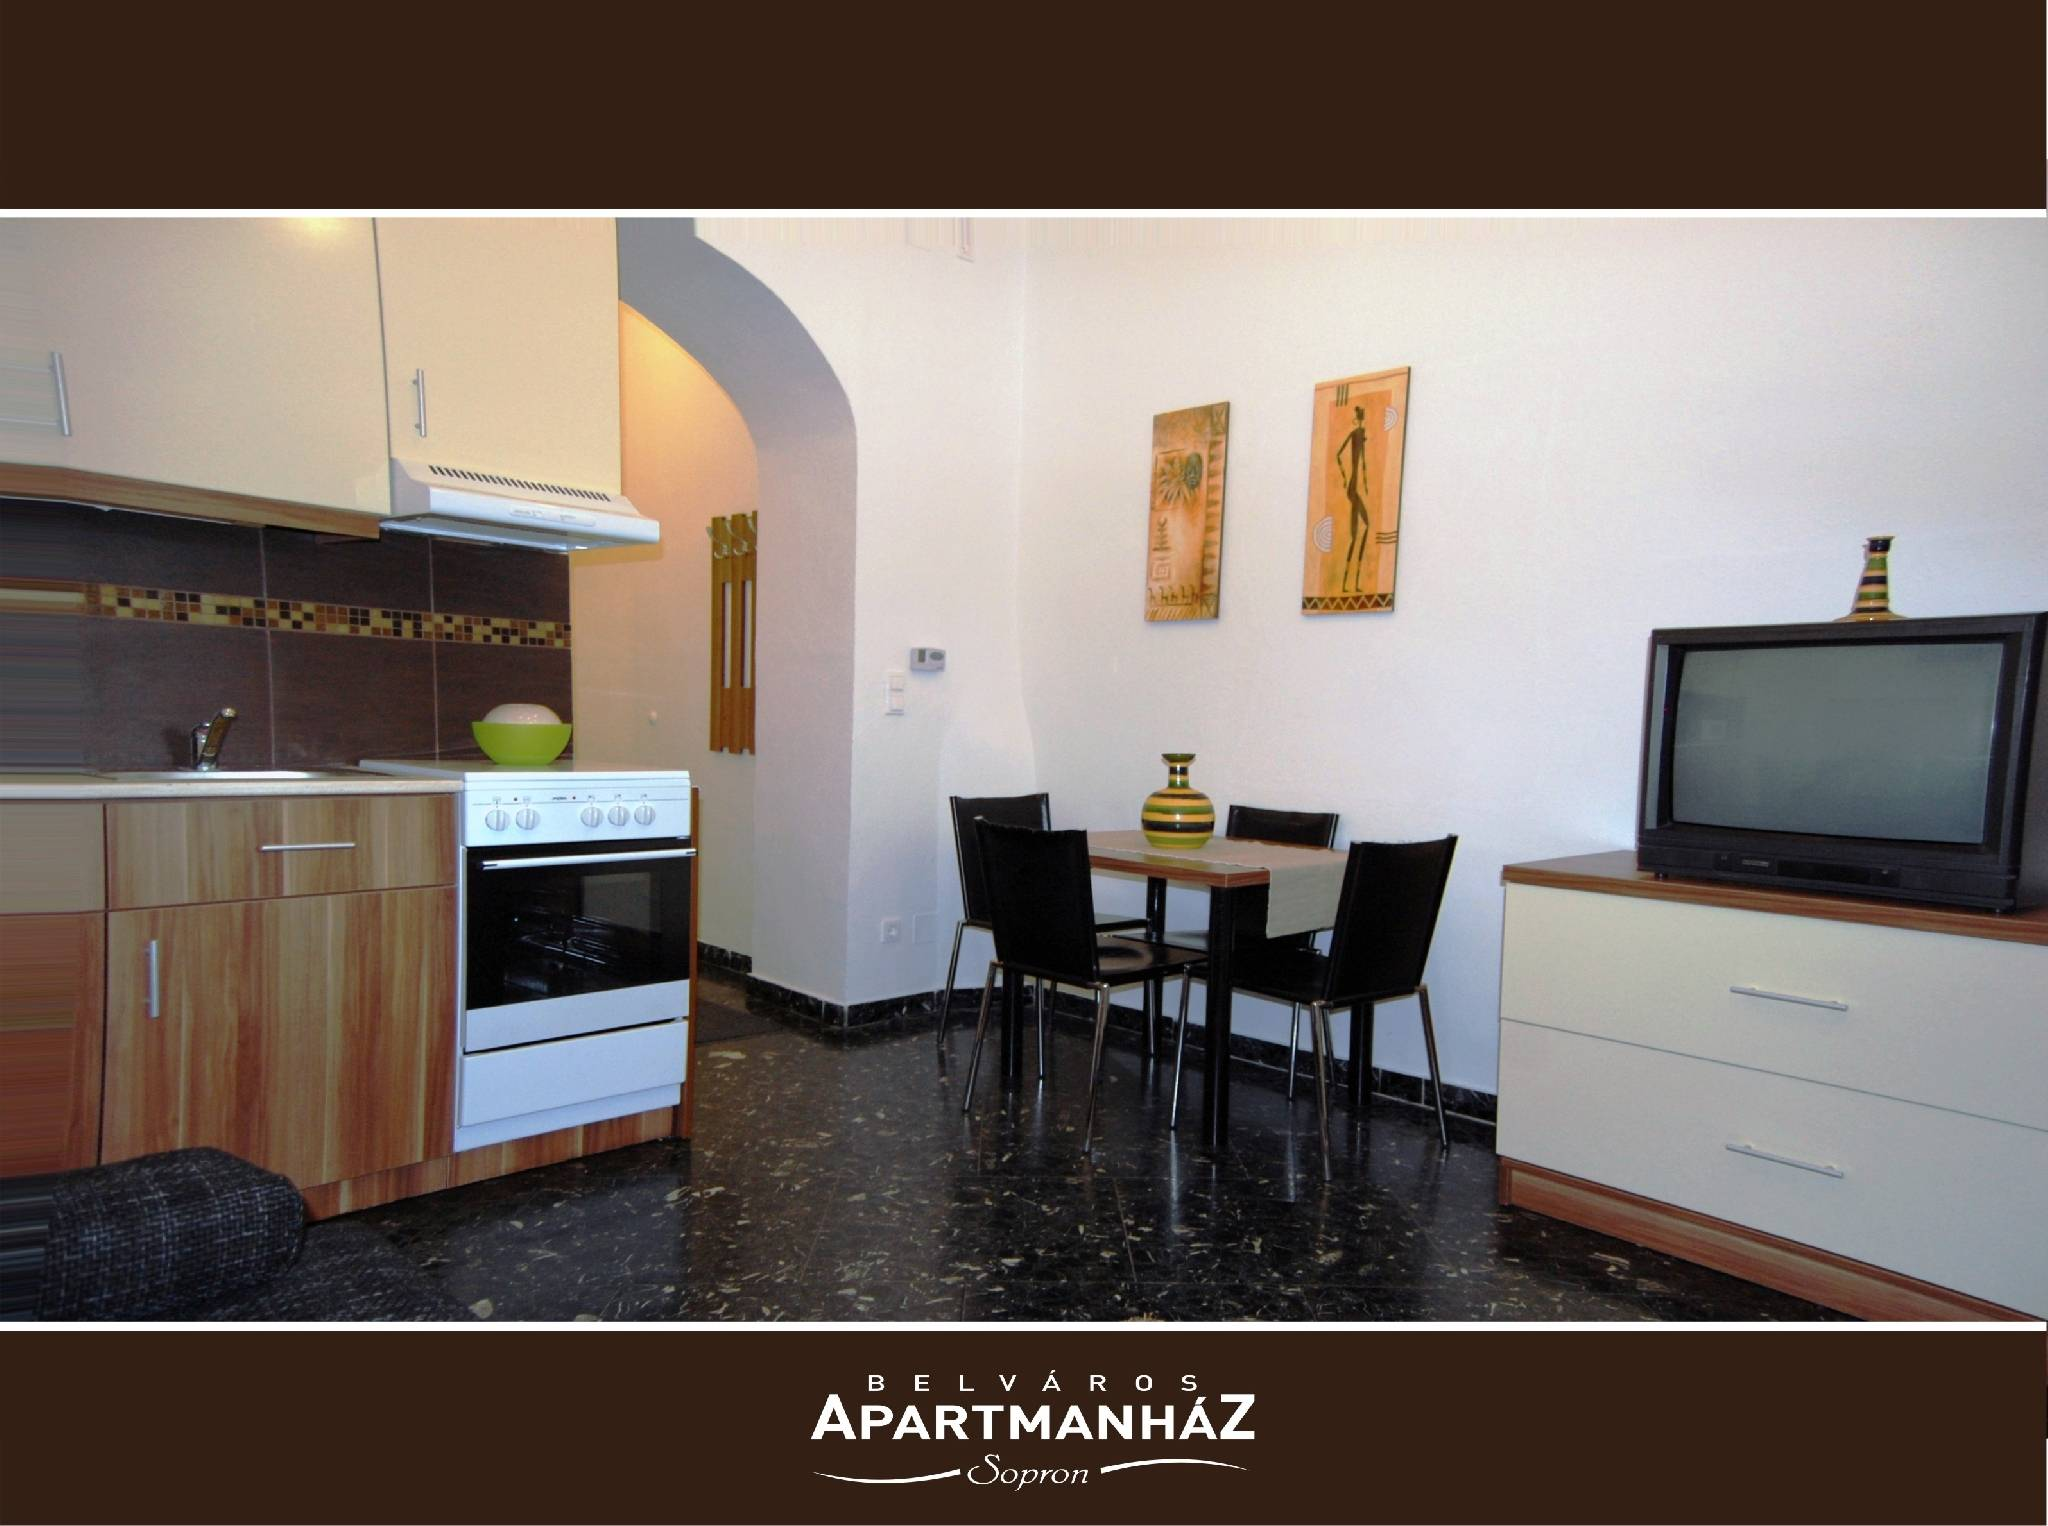 Apartmanok hosszabb tvra Sopronban! 3000Ft/f/j-tl, min. 11nap/10j